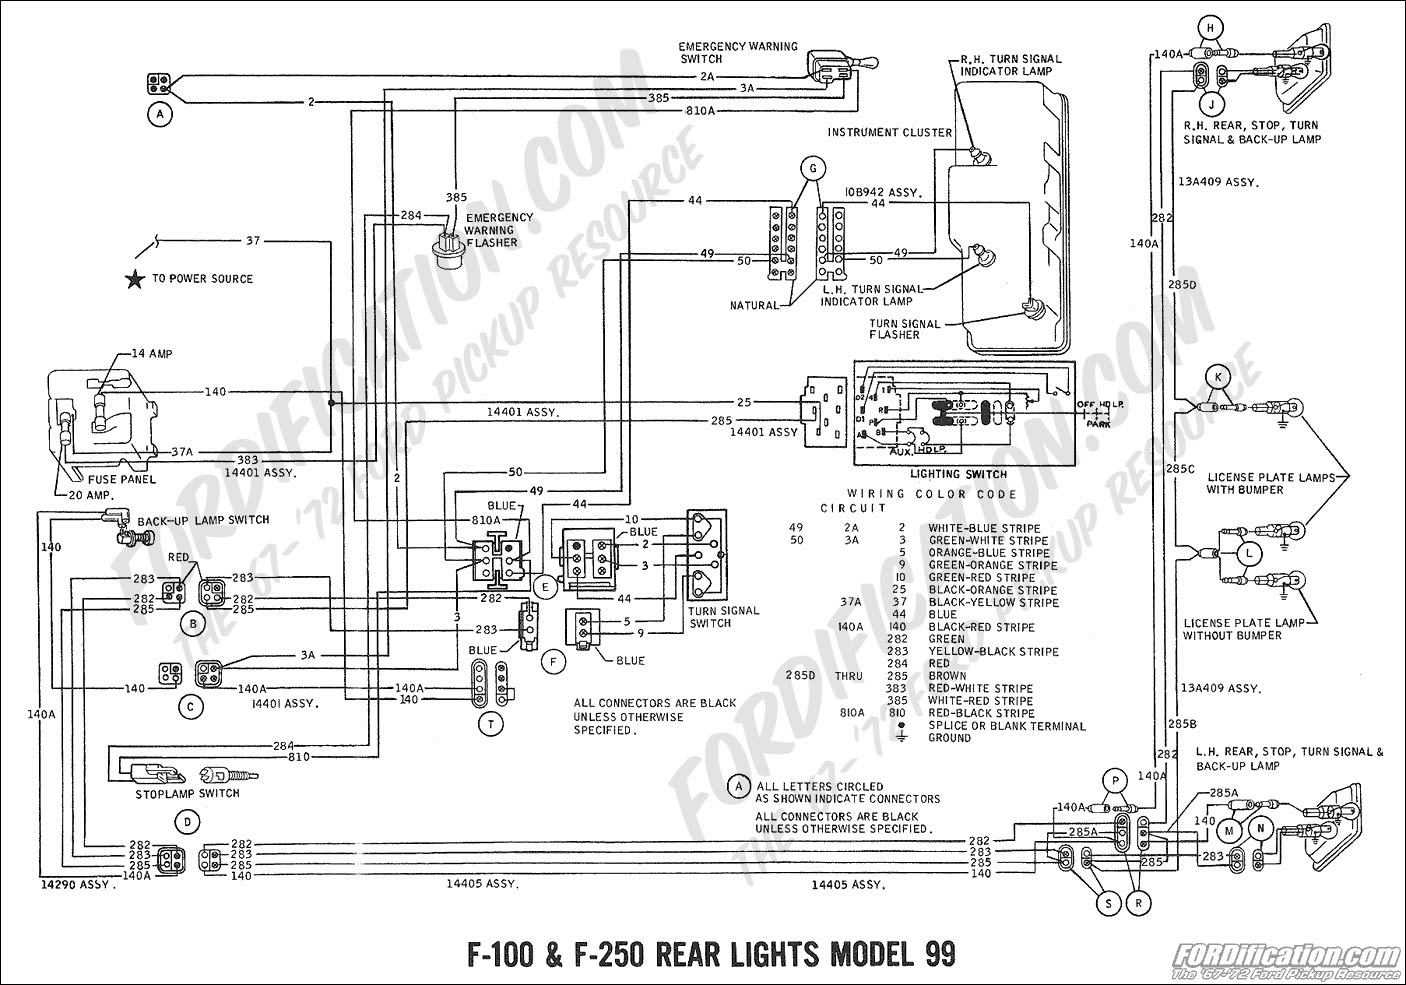 [DIAGRAM_5NL]  FNGW_3878] Suzuki Gsr Wiring Diagram Diagram Base Website Wiring Diagram -  DEFINELUCIDZ.MISSERO.IT | Free Download Gsr Series Wiring Diagram |  | Diagram Database Website Full Edition - missero.it